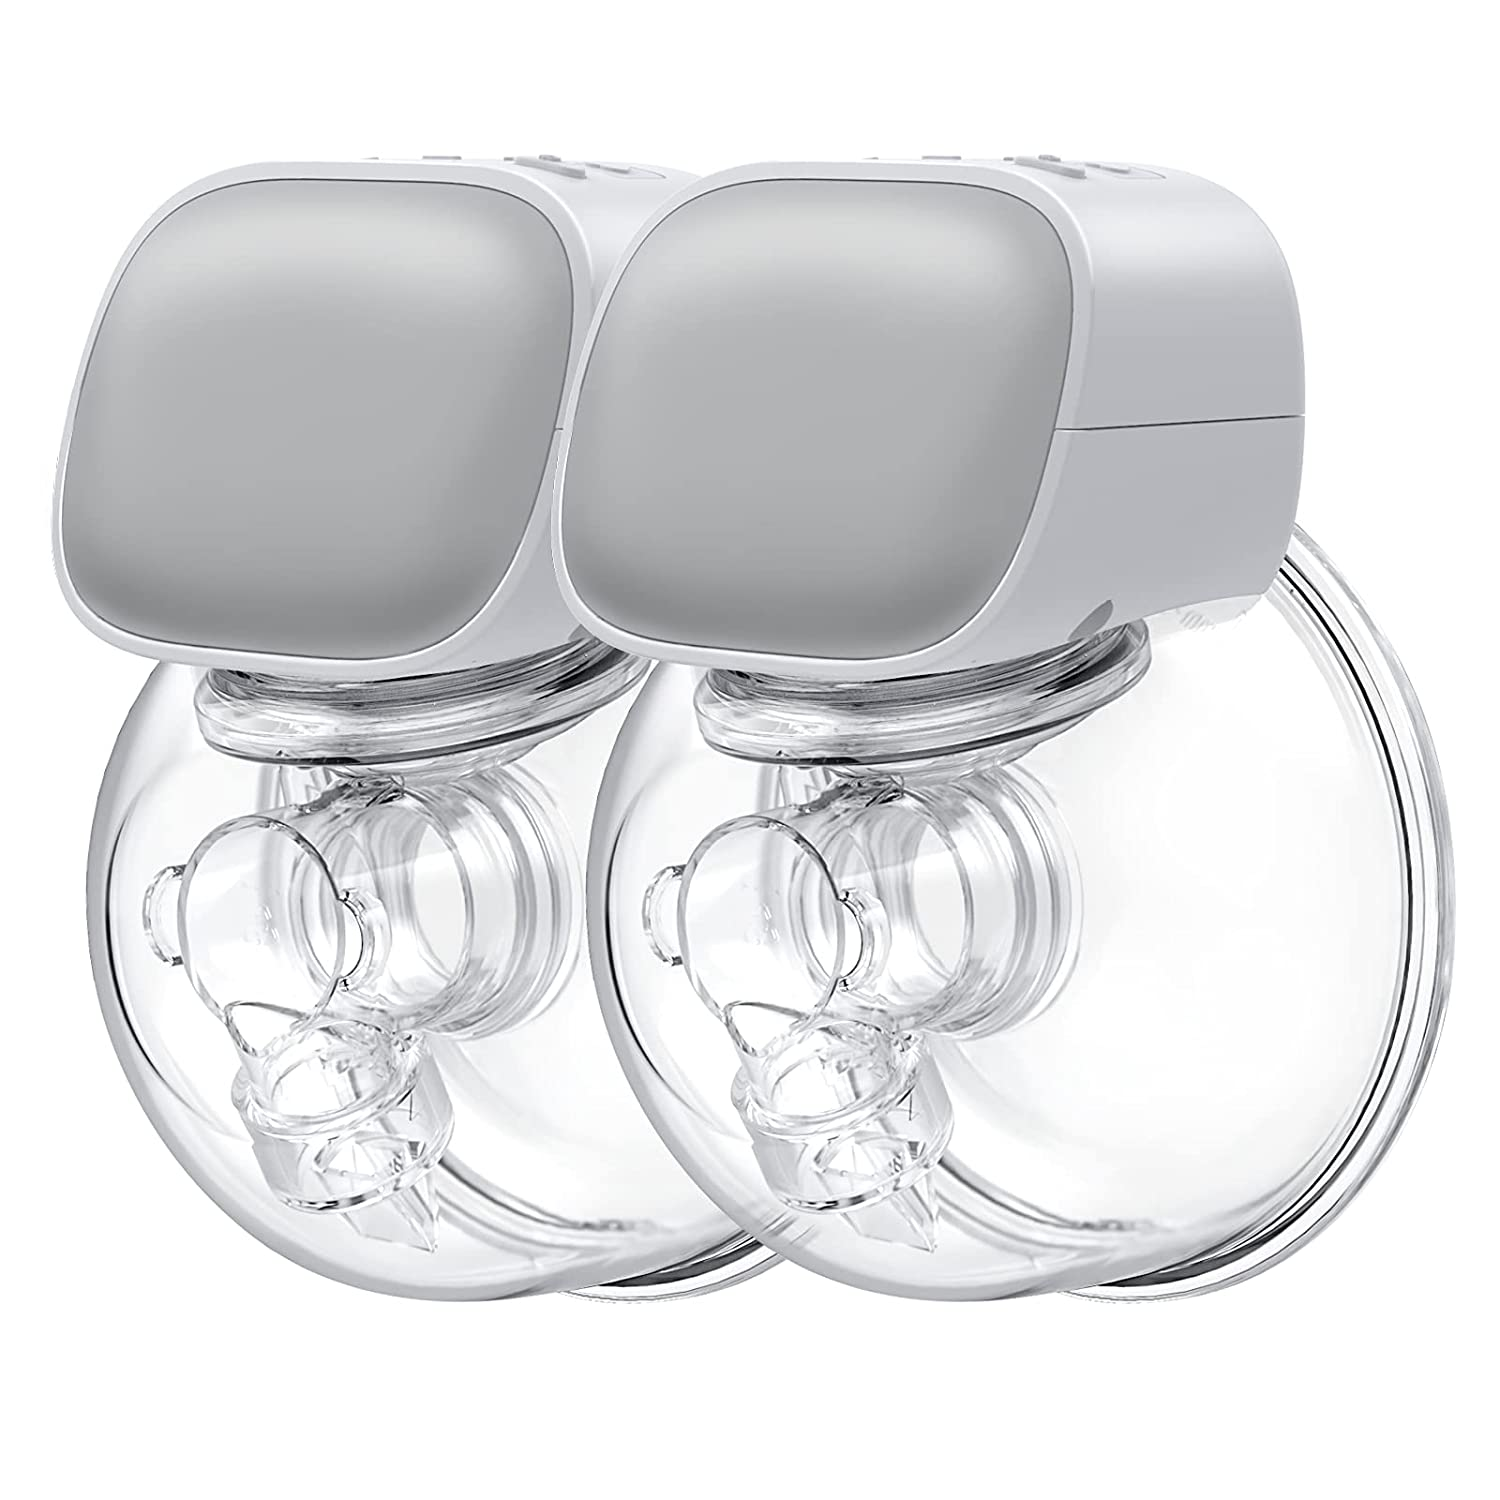 Momcozy Double Wearable Breast Pump Hands-Free Low Max 43% OFF Noise Port 2021